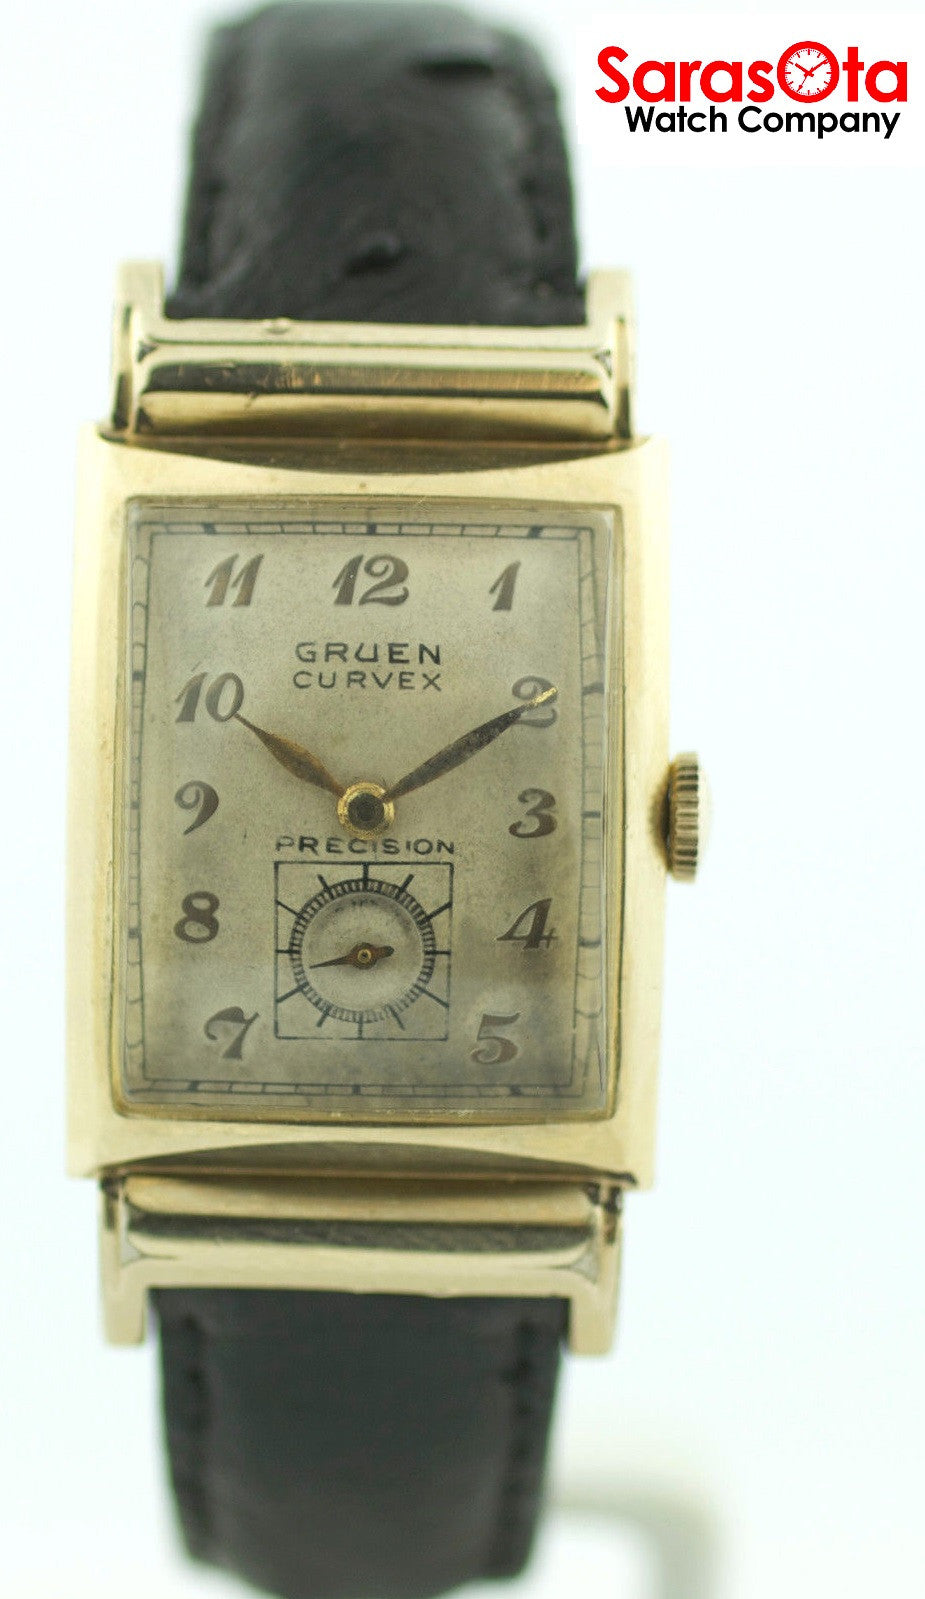 chieftain watch white illinois filled shop sold watches gold the wrist img